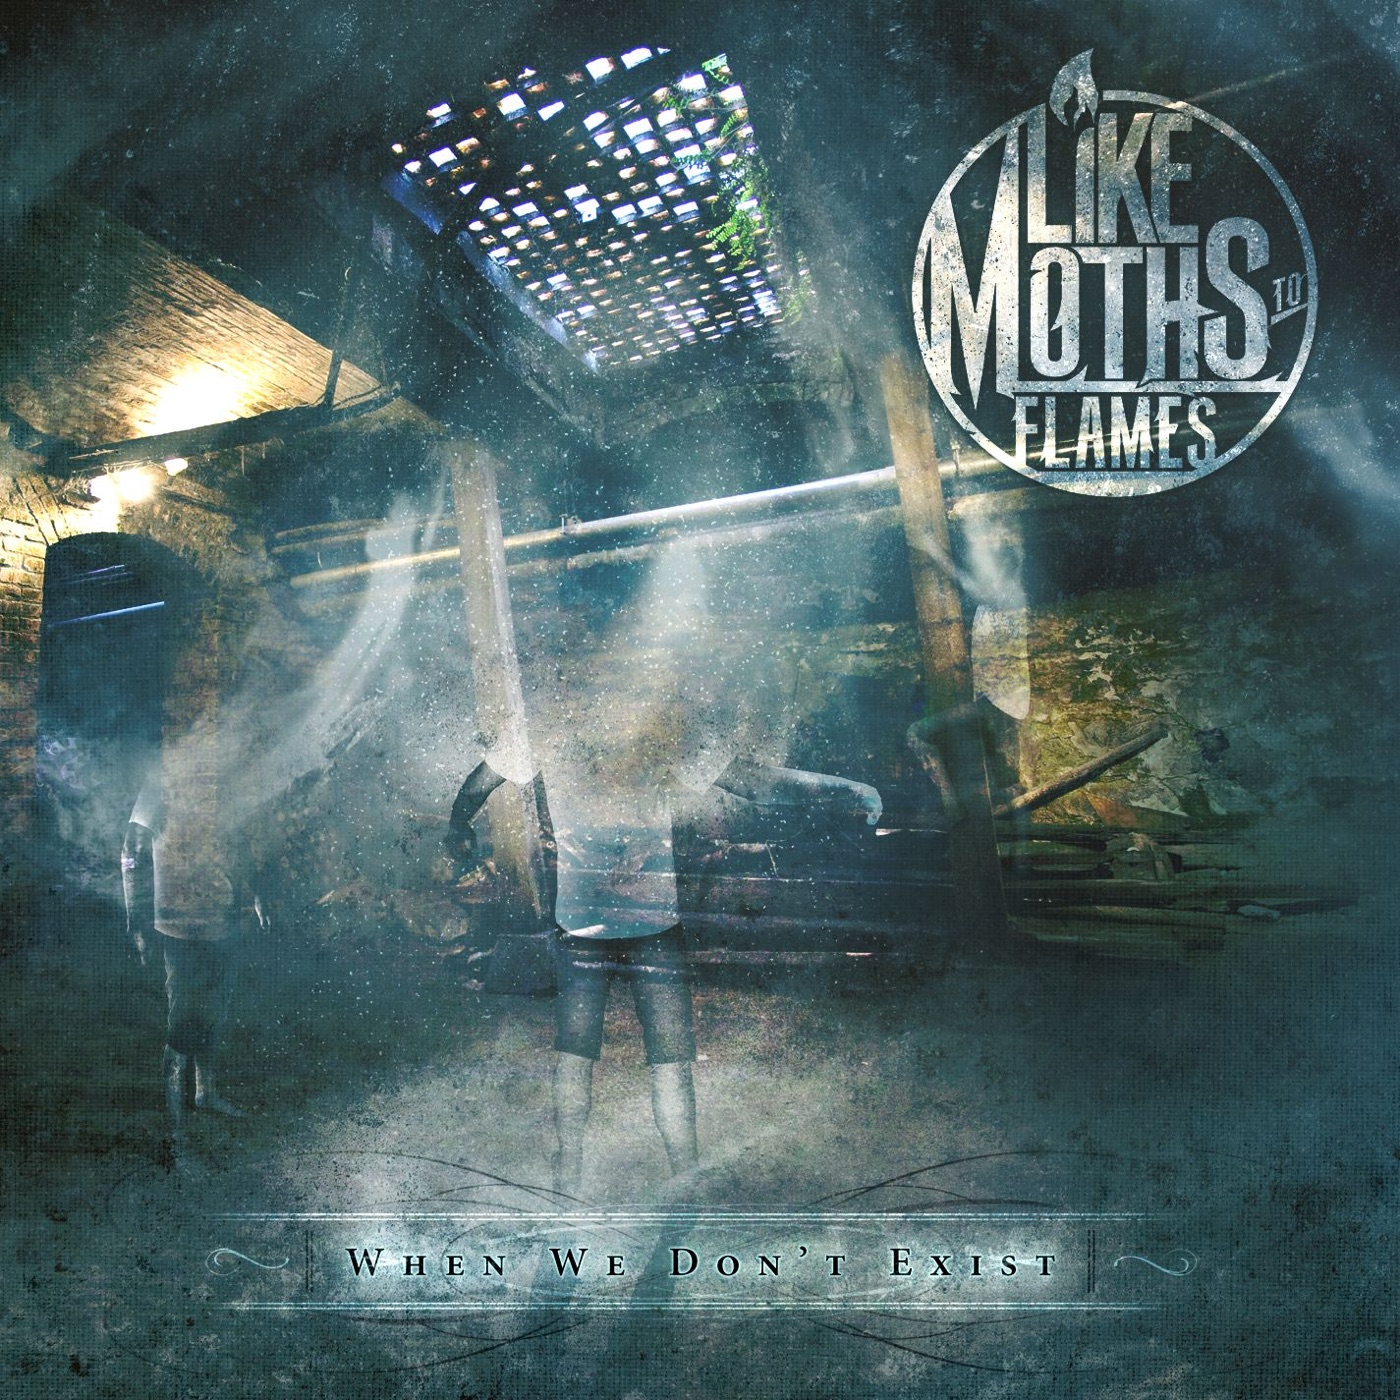 Like Moths To Flames - When We Don't Exist (2011)